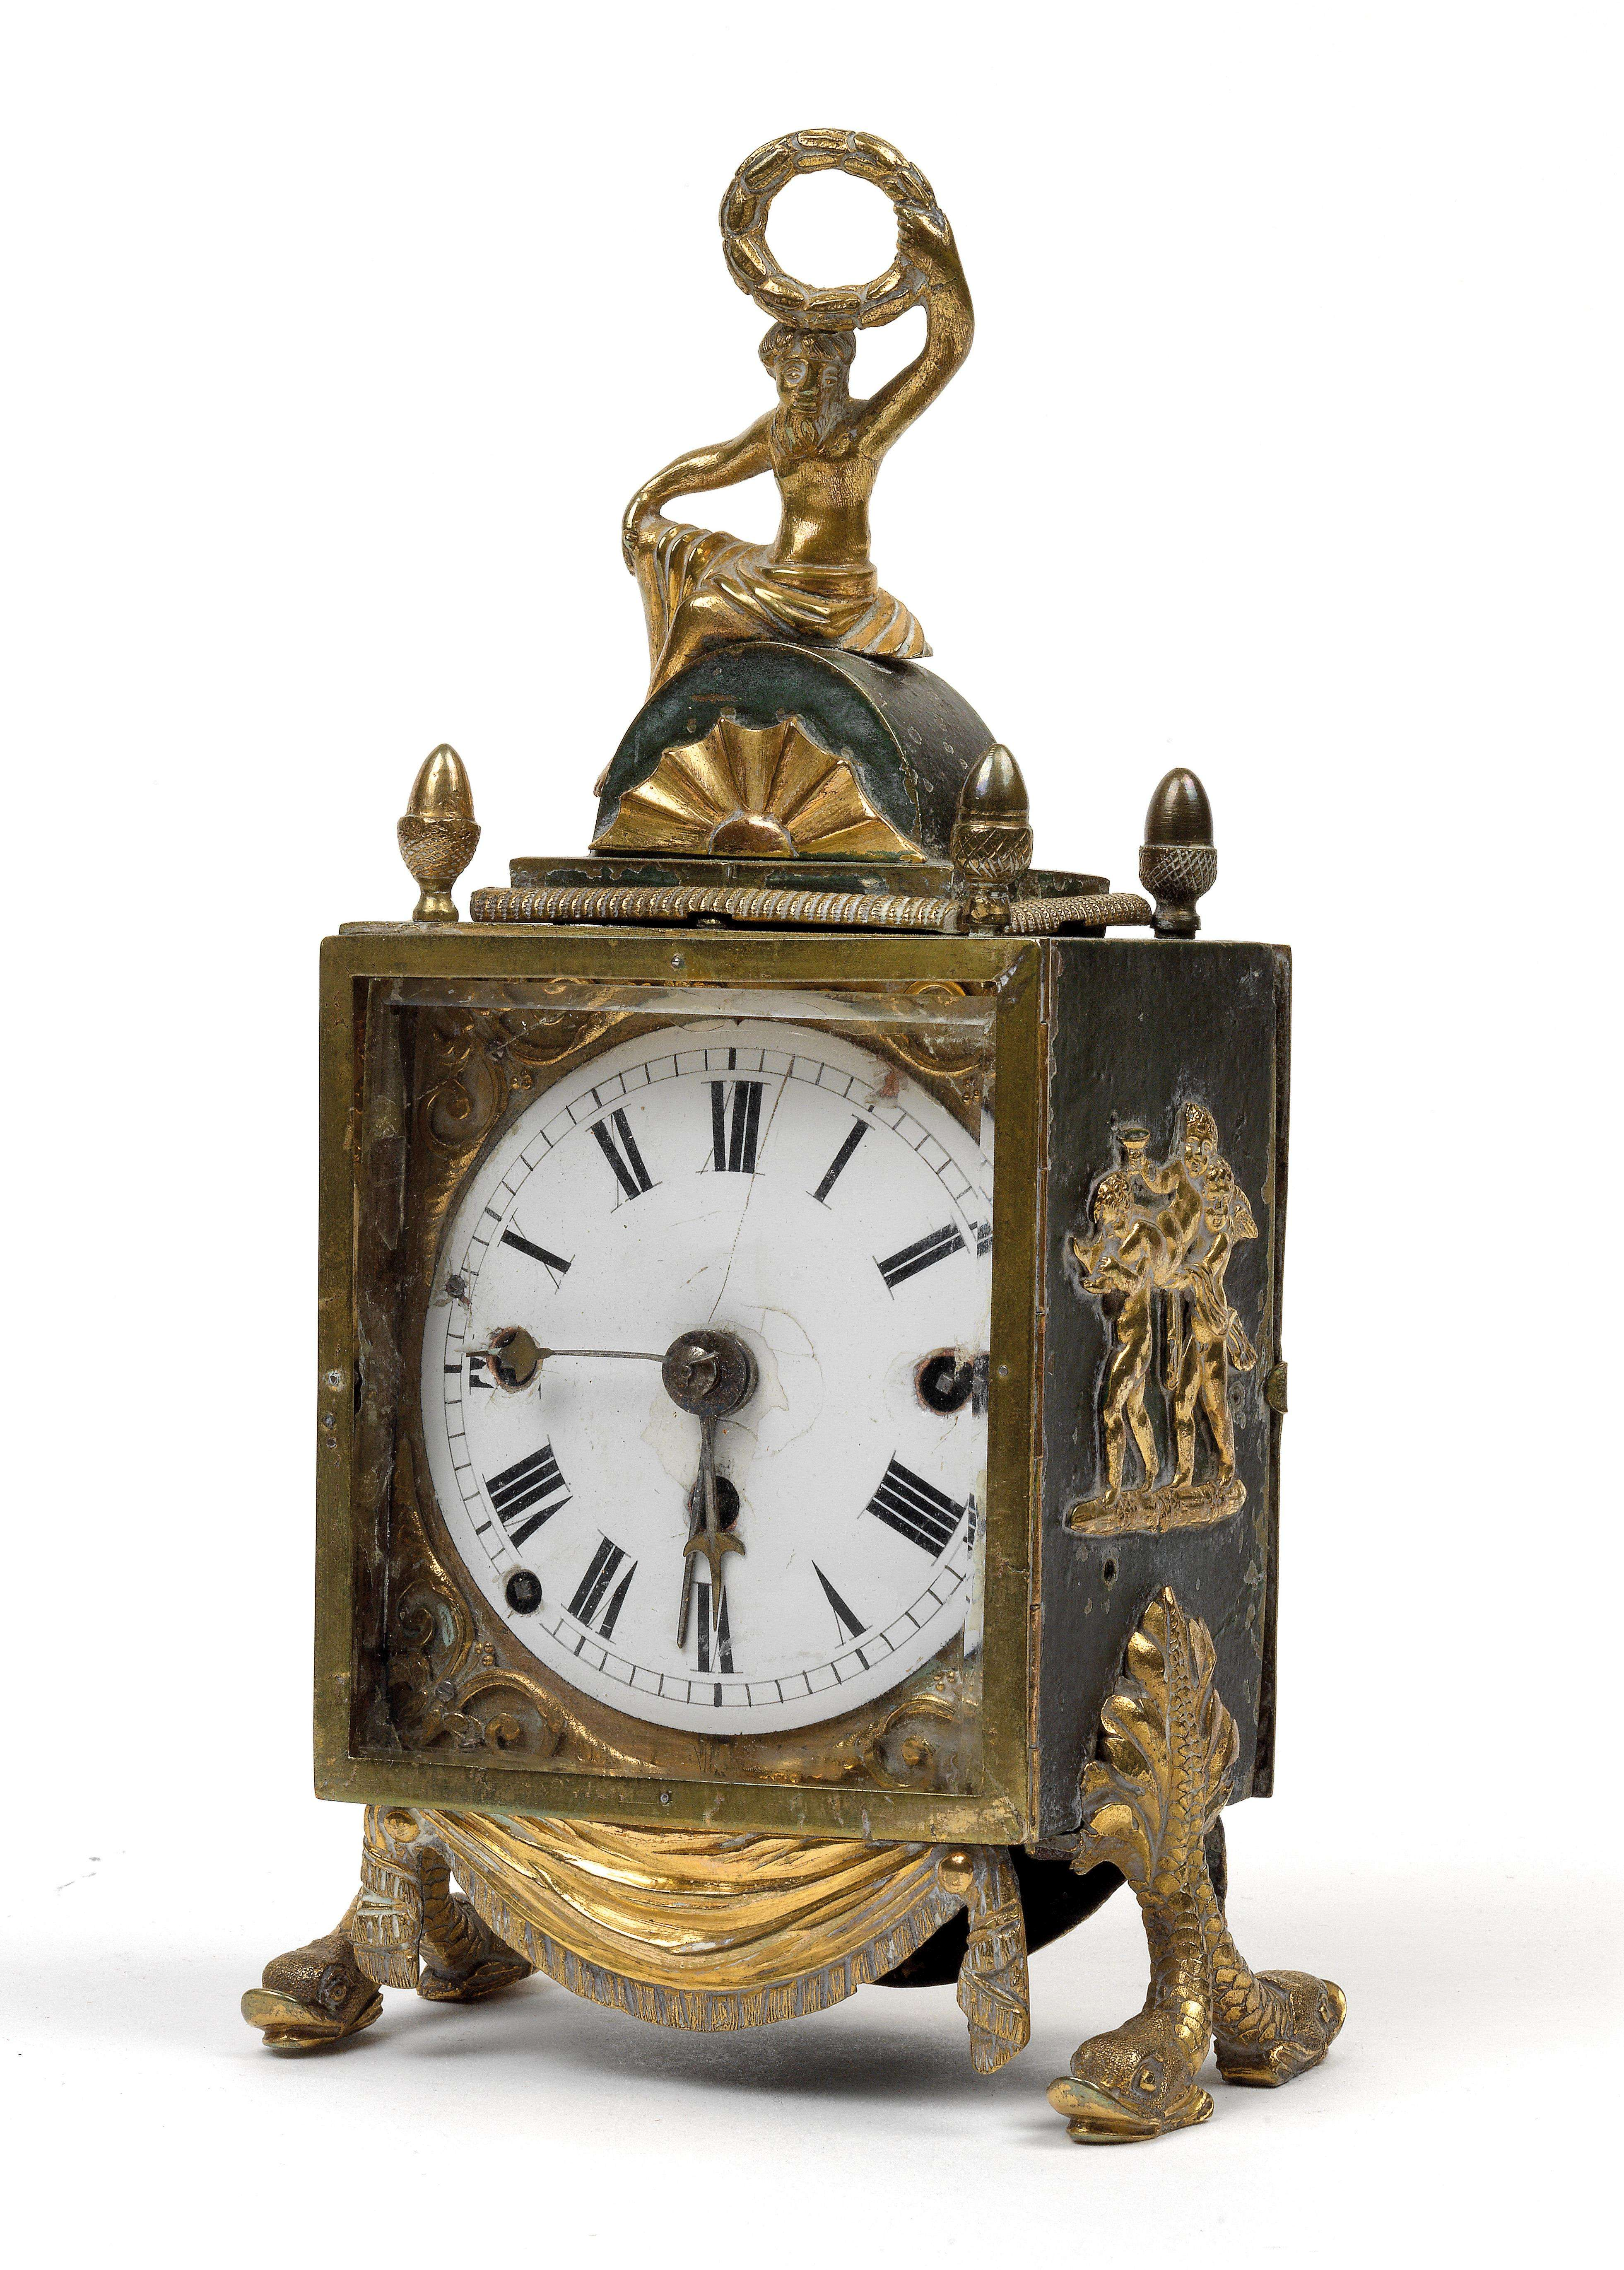 A Empire officer's travel clock - Antiques: Clocks, Vintage